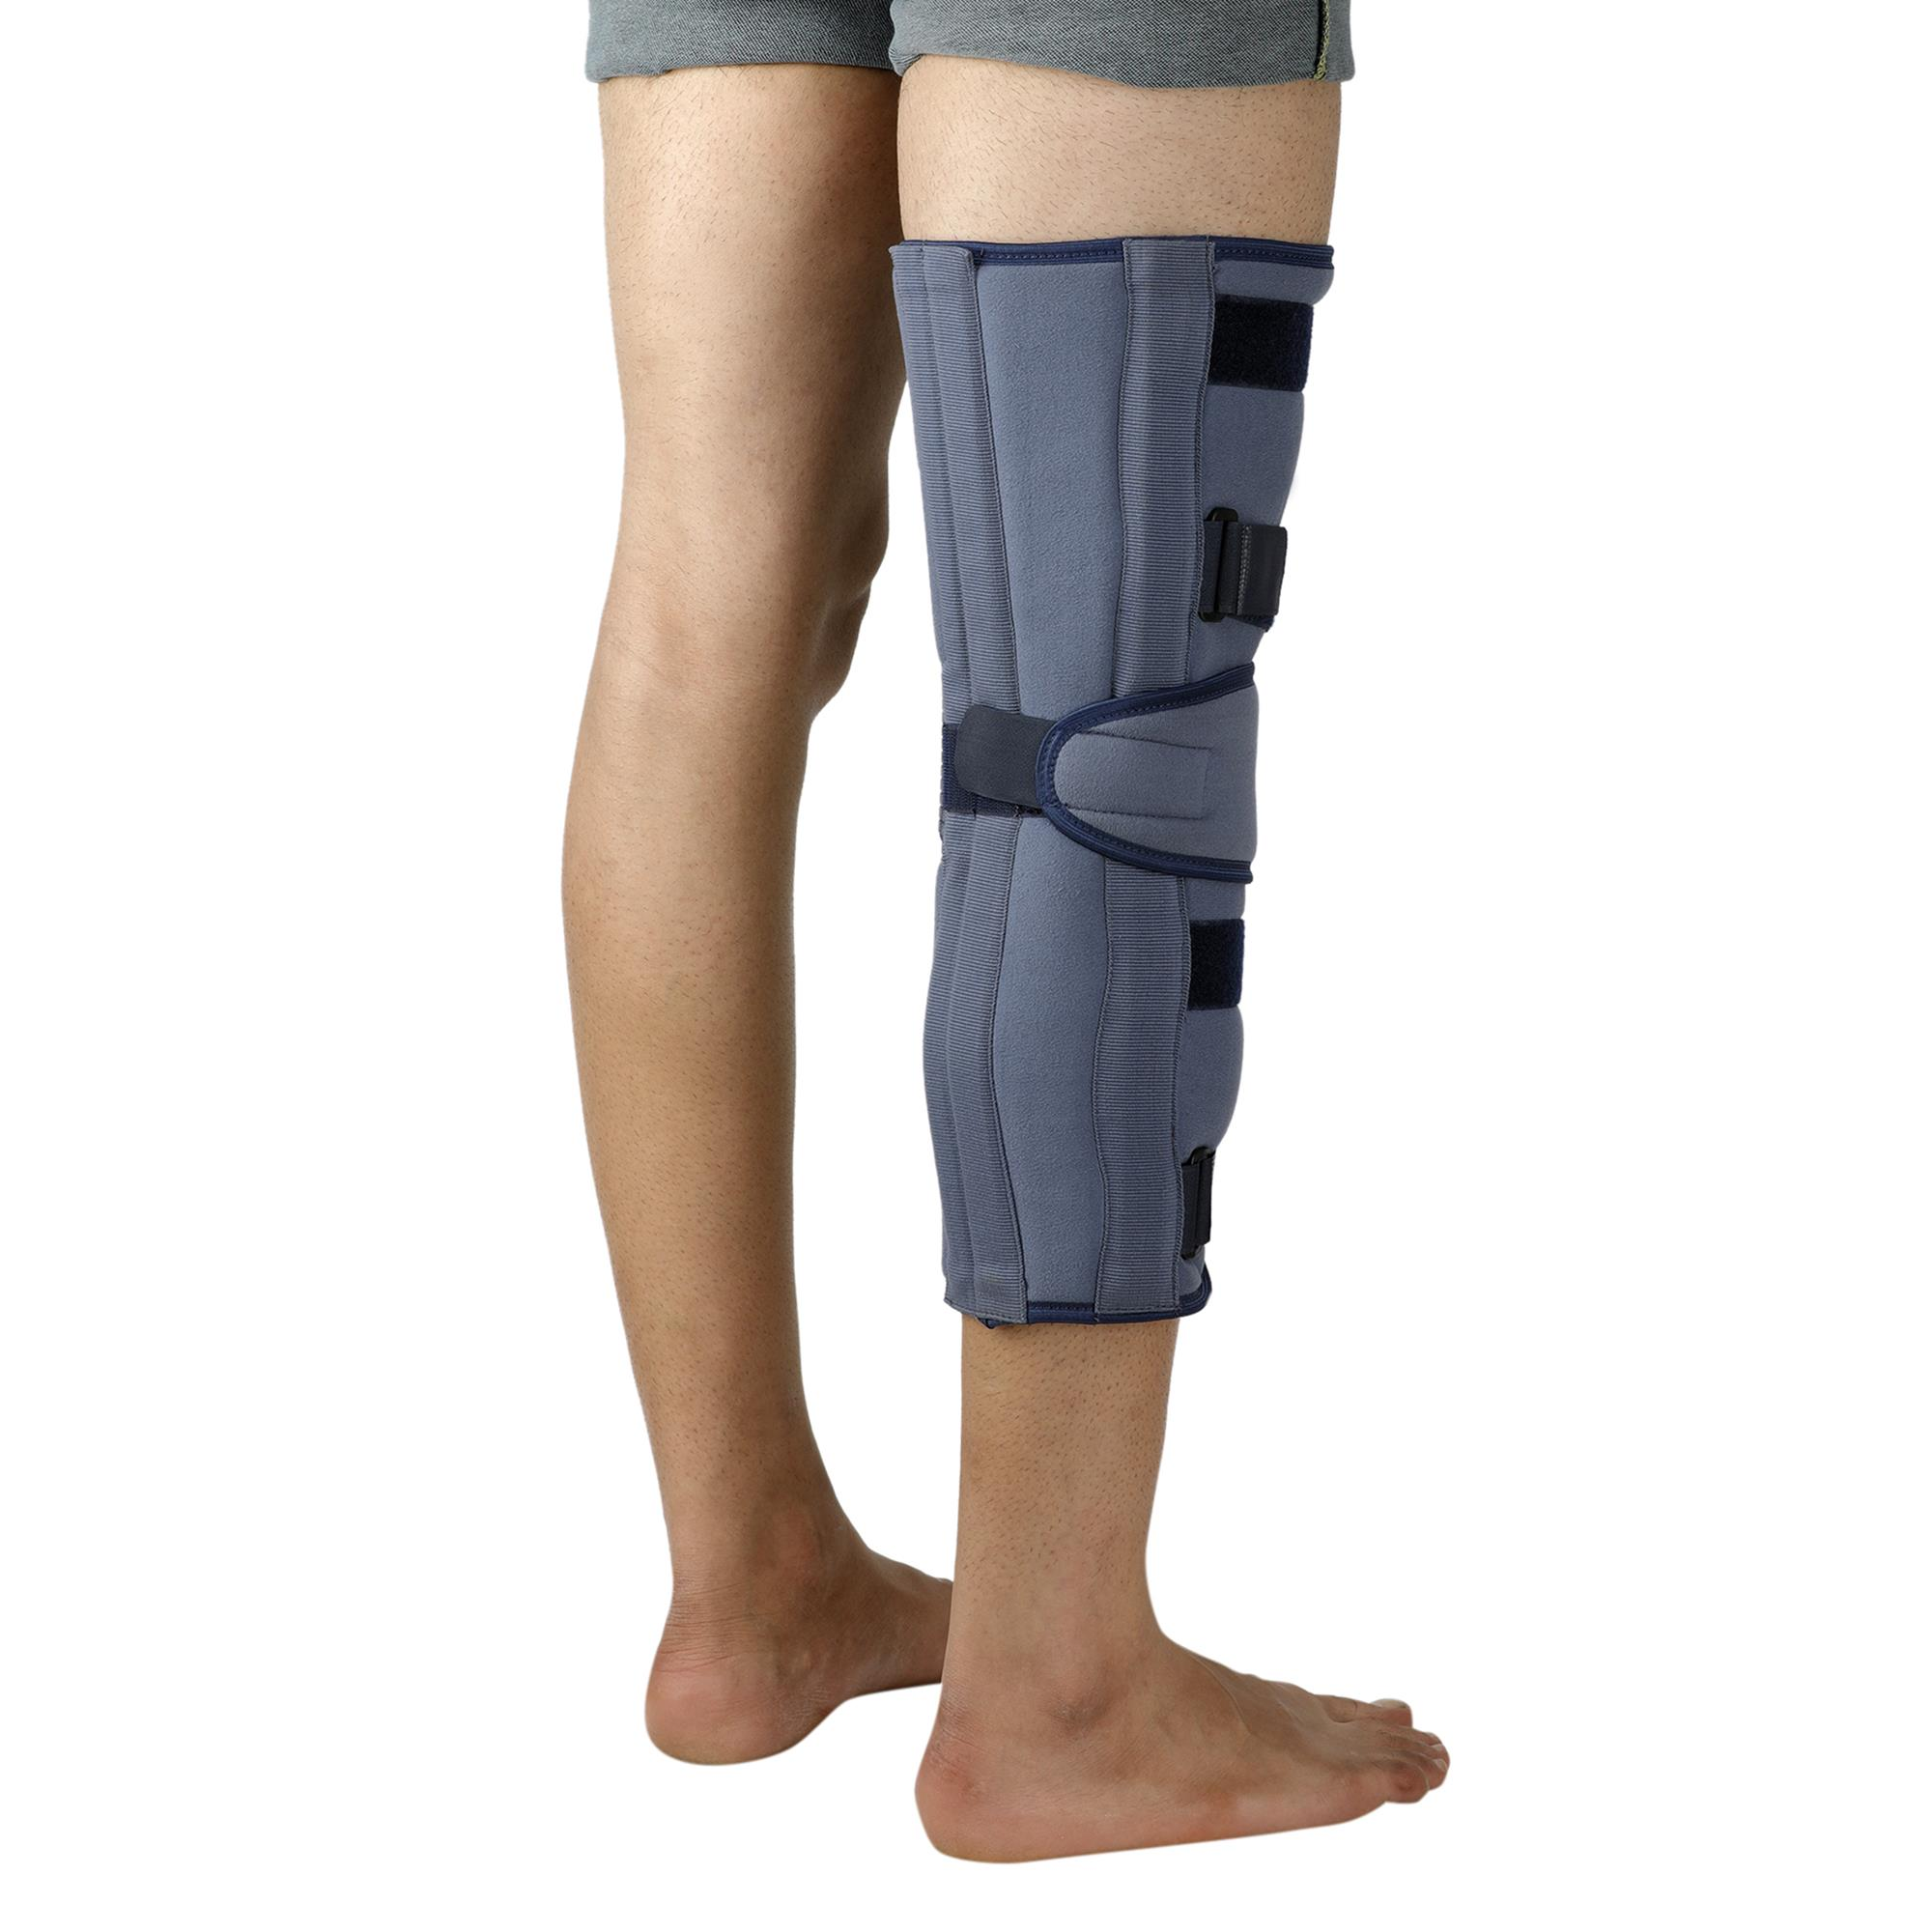 """Lifeshield Knee Immobilizer 19"""": Used For Restricting Leg & Knee Movement After Surgery Or Injury (XX Large)"""